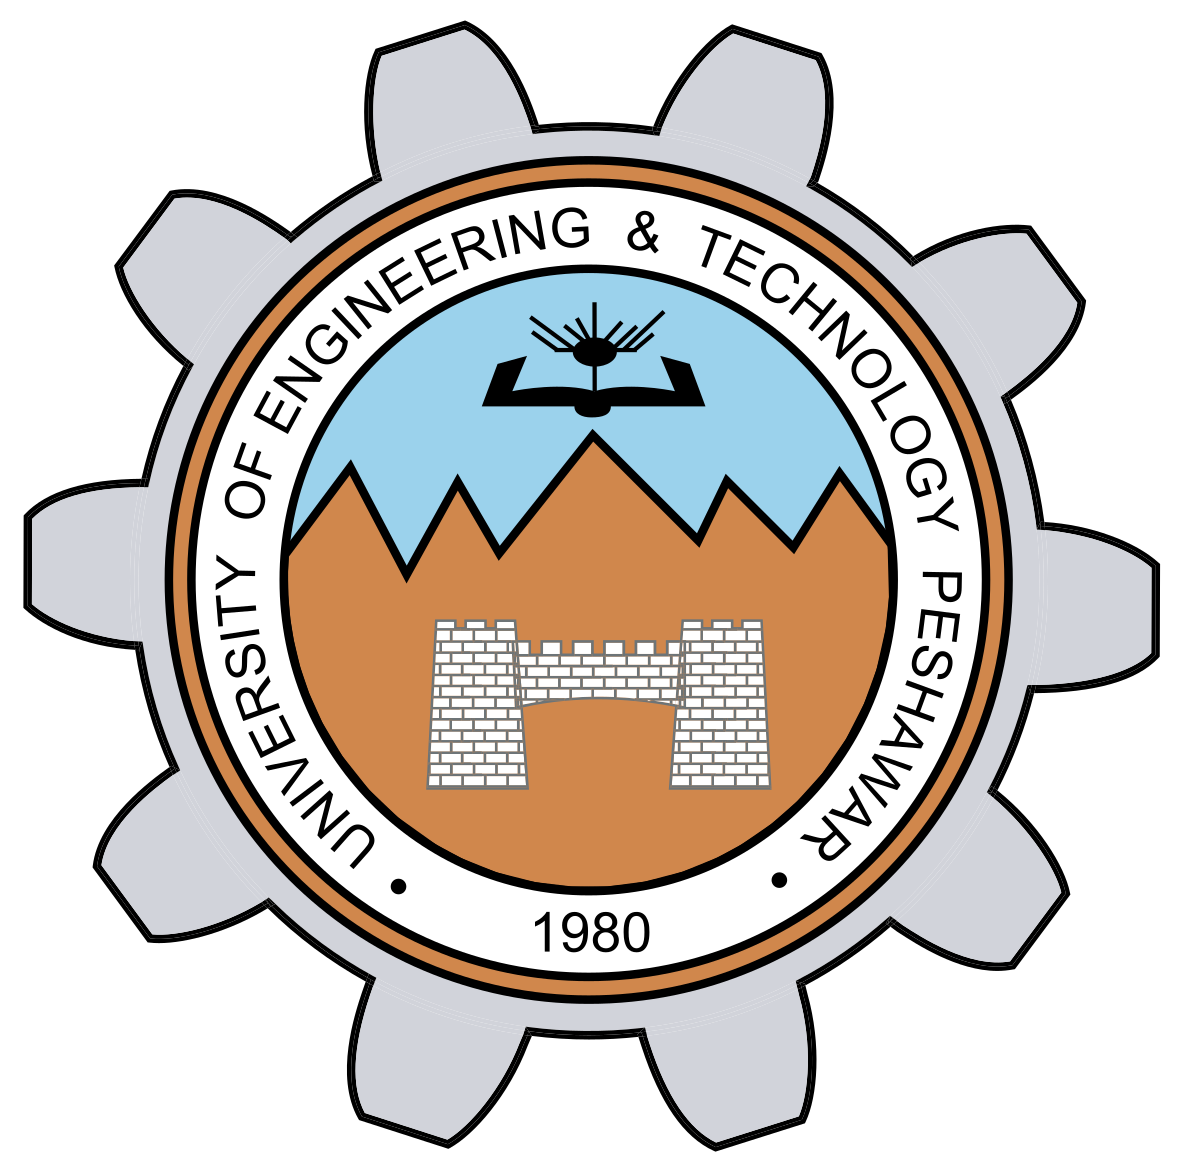 Technology clipart technology center. University of engineering and